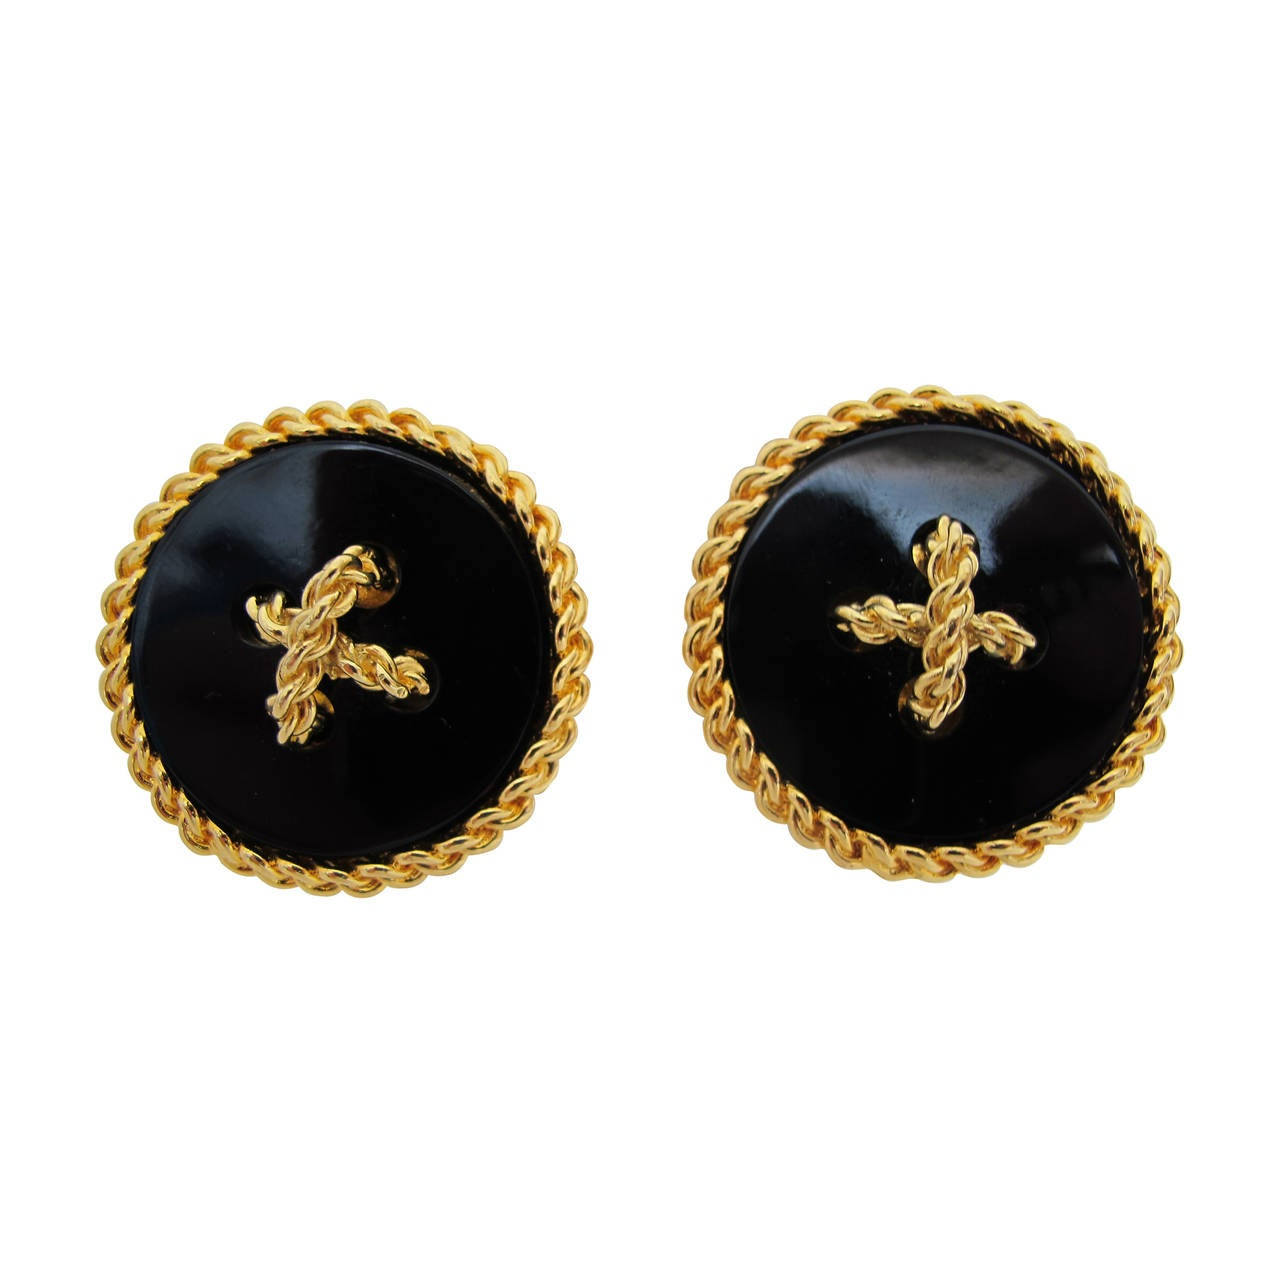 2003 Chanel Gold Chain Over-Sized Circular Black Onyx Clip-On Earrings 1